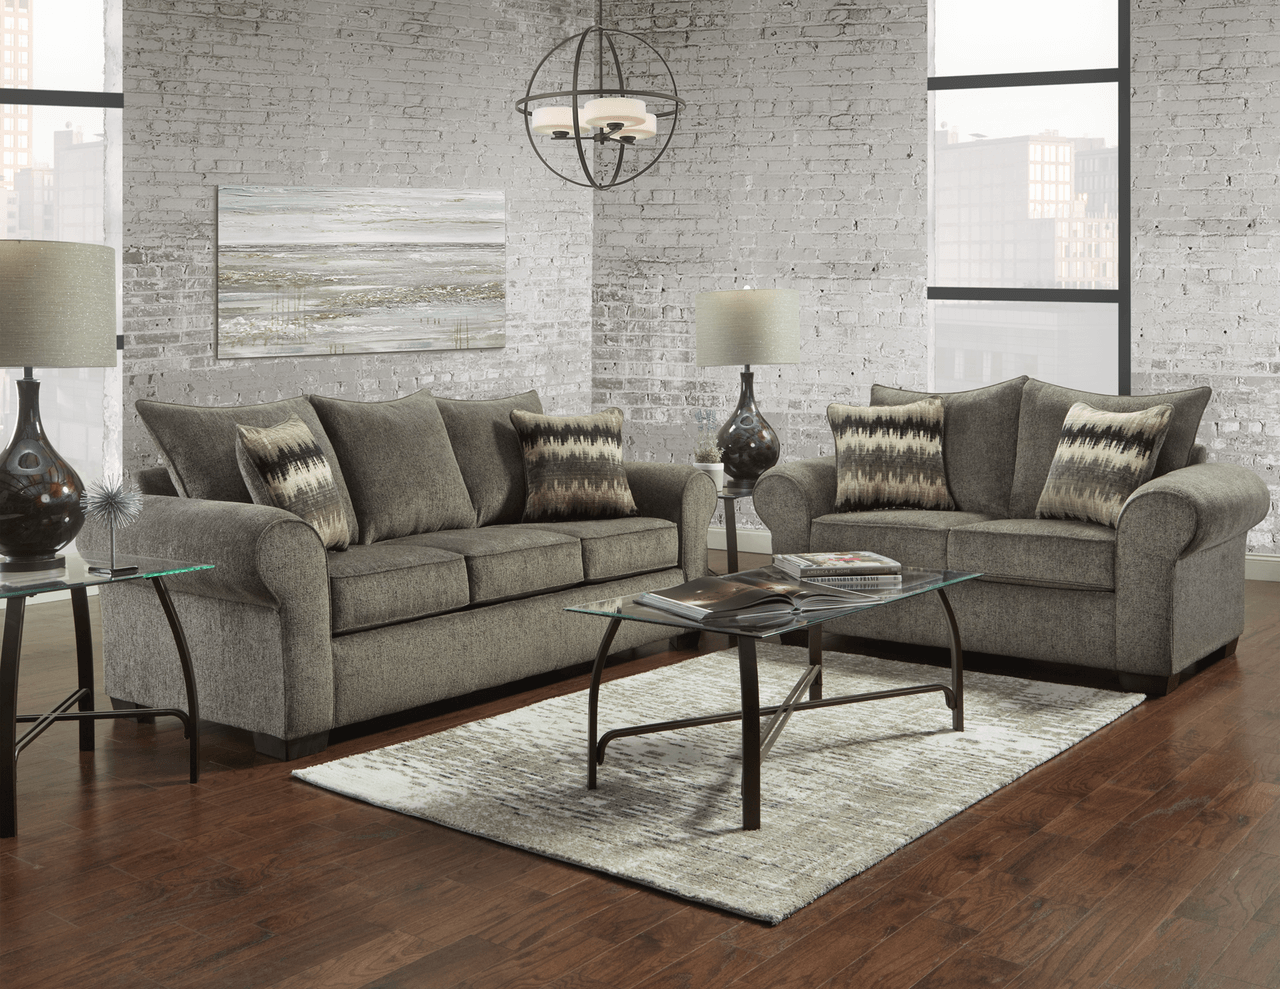 Camero Pewter Sofa And Loveseat Fabric Living Room Sets